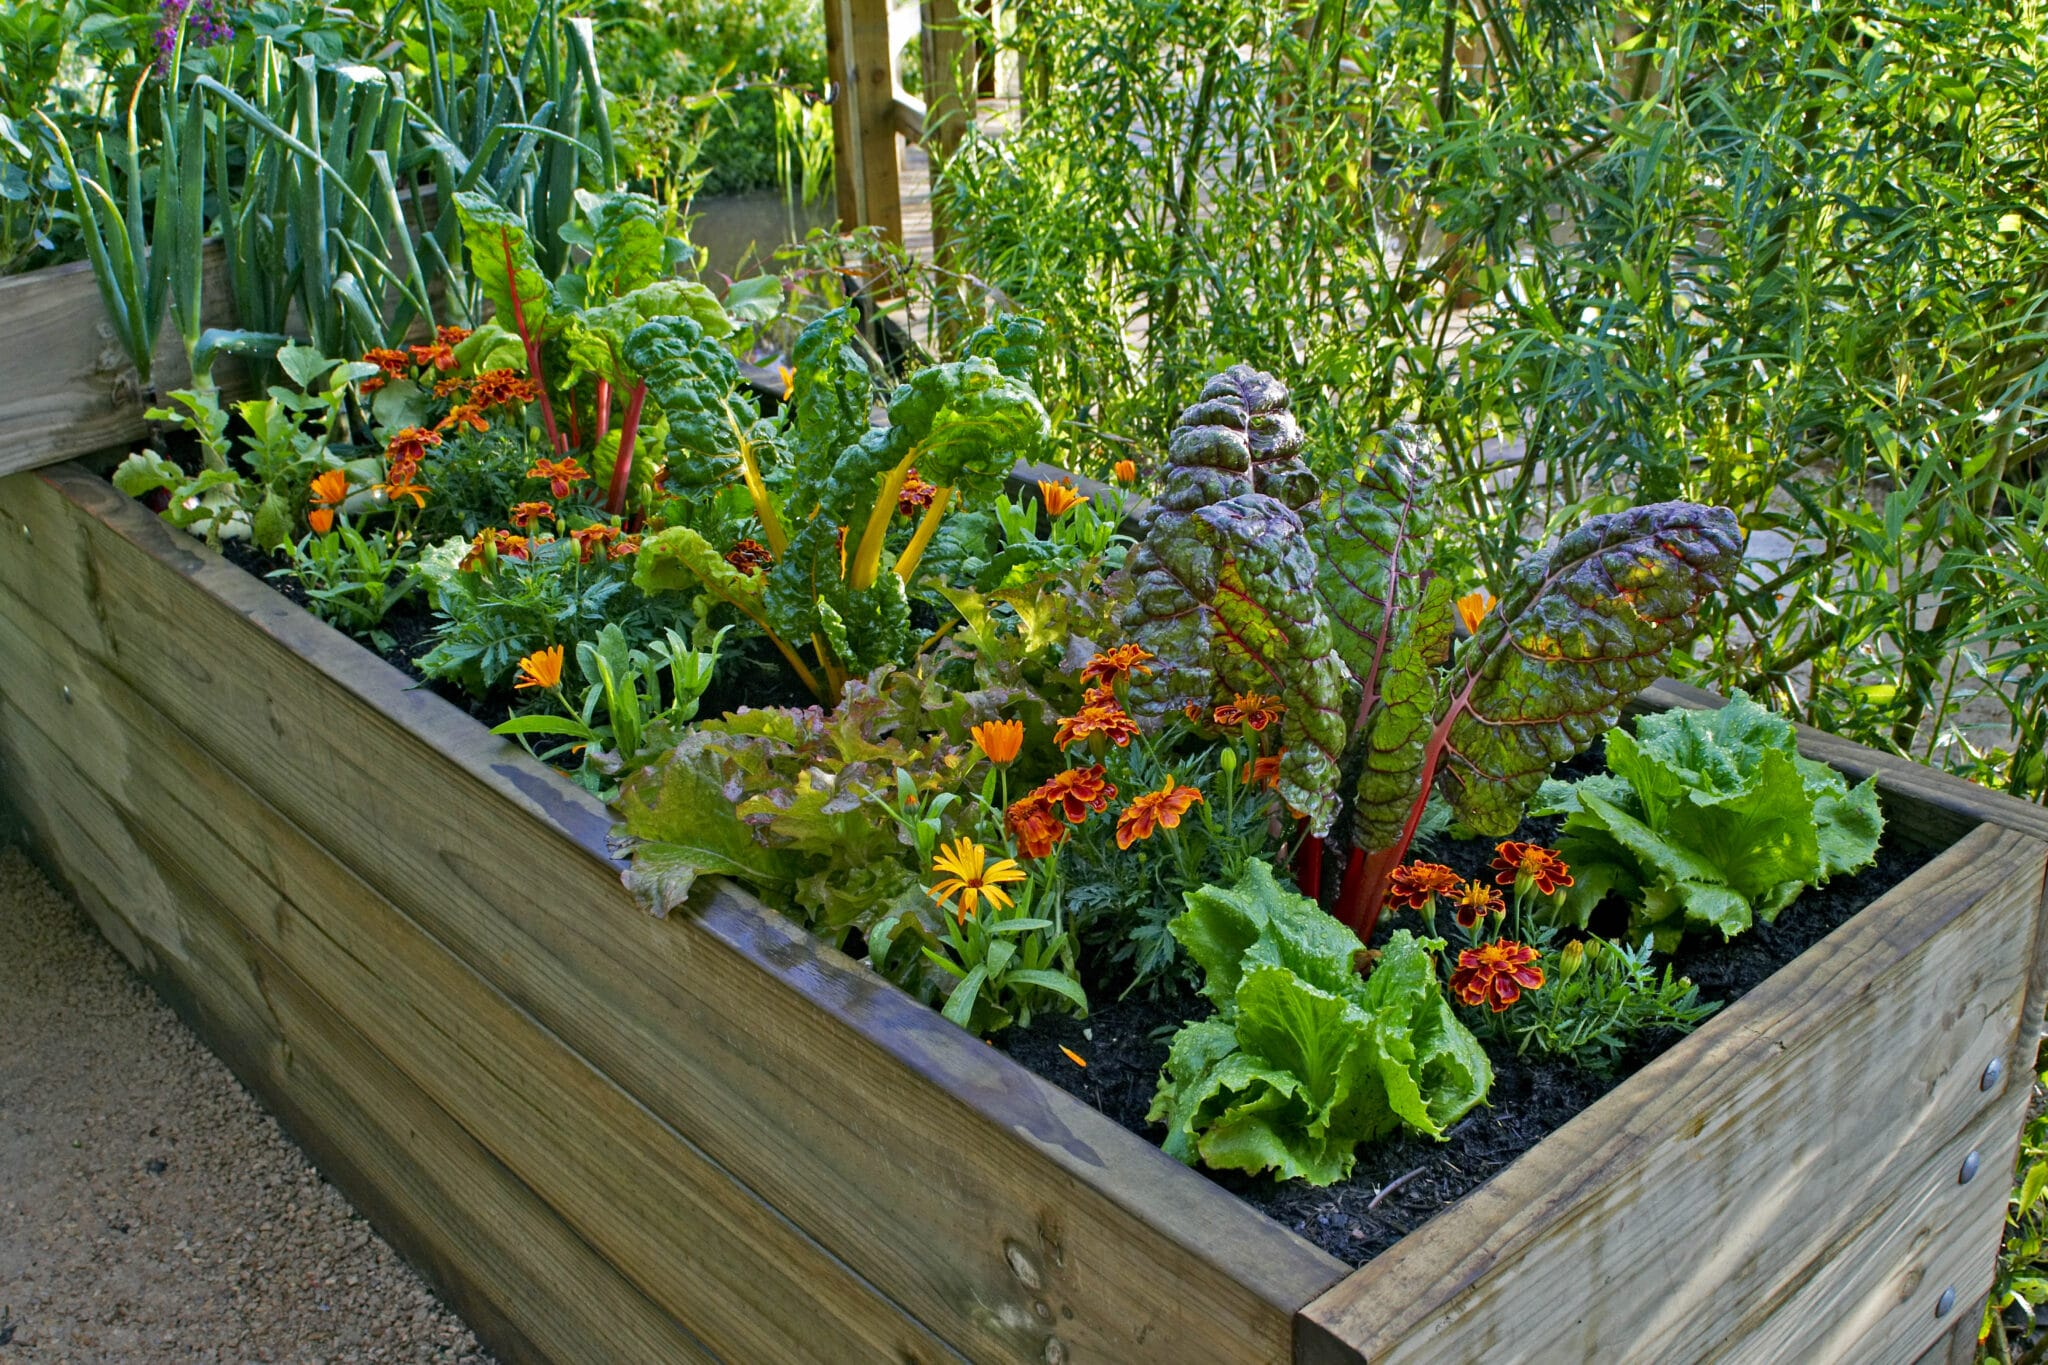 A small raised garden bed with a variety of different vegetables and flowers being used as companion plants.